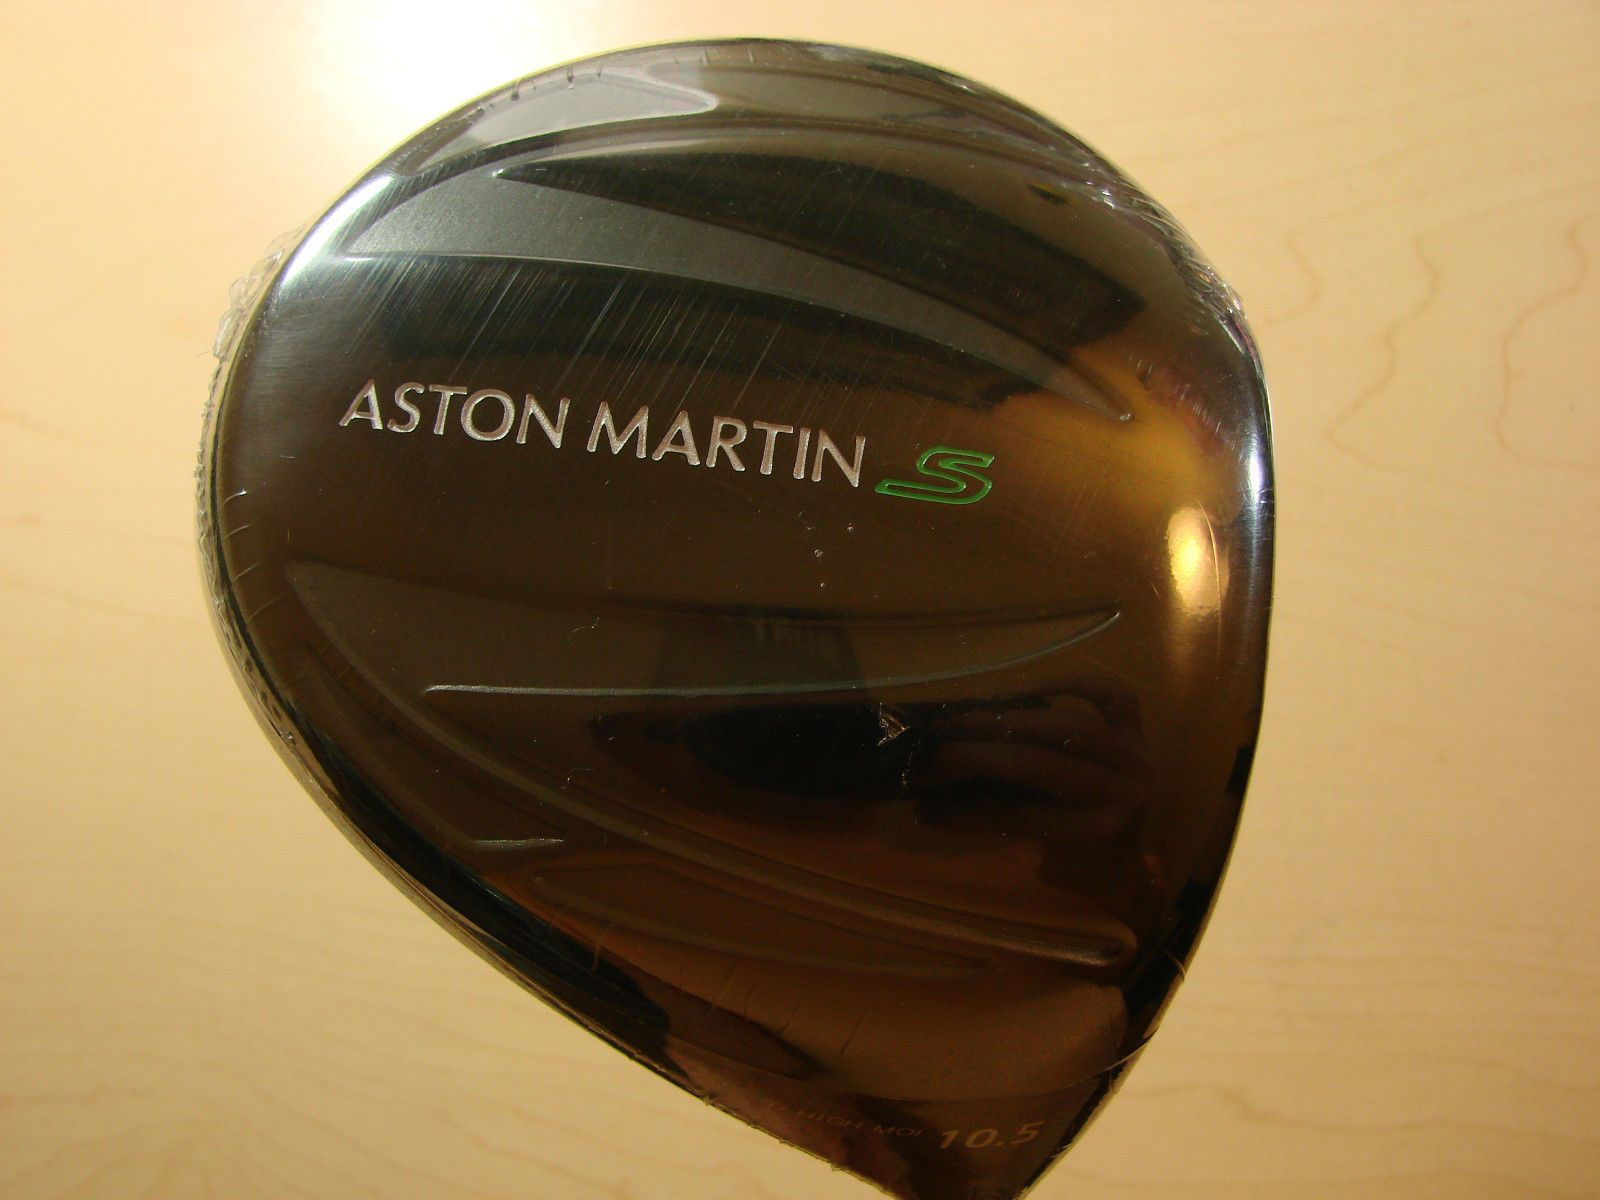 new aston martin golf s driver 10.5 deg ust mamiya regular rh hc